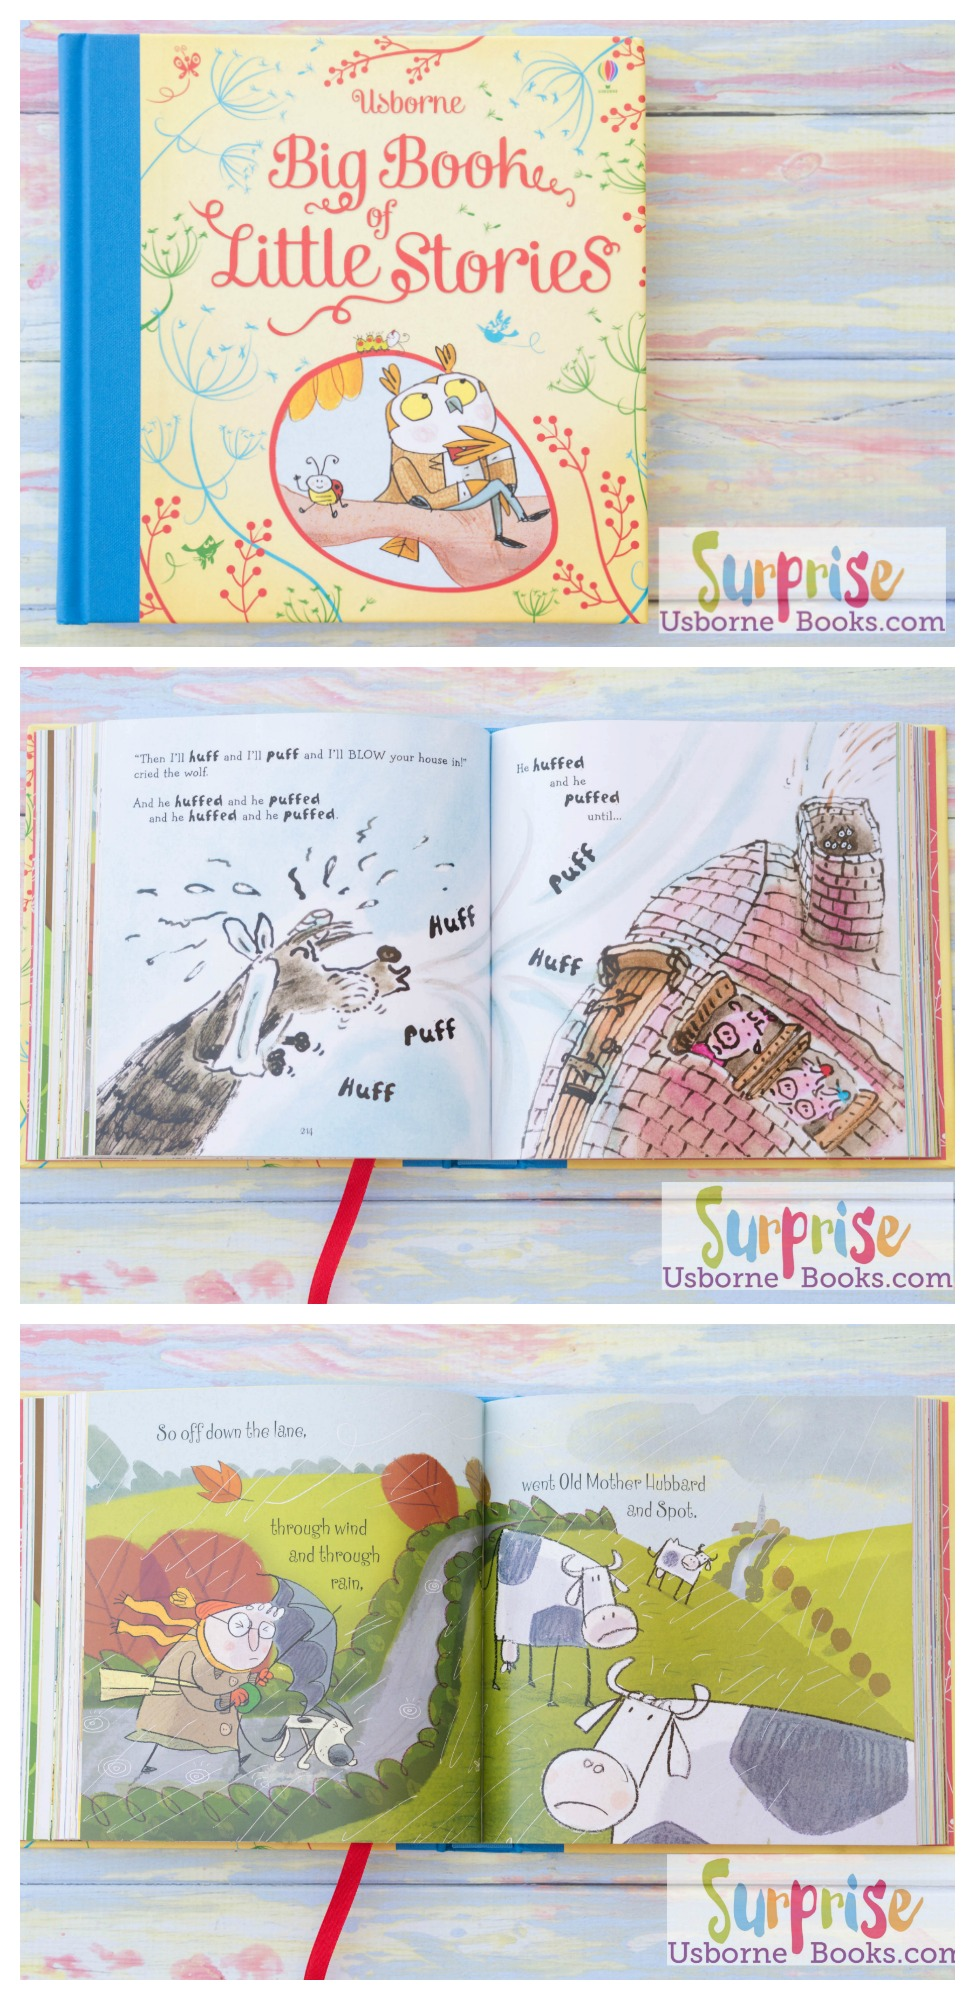 Big Book of Little Stories - Surprise Usborne Books